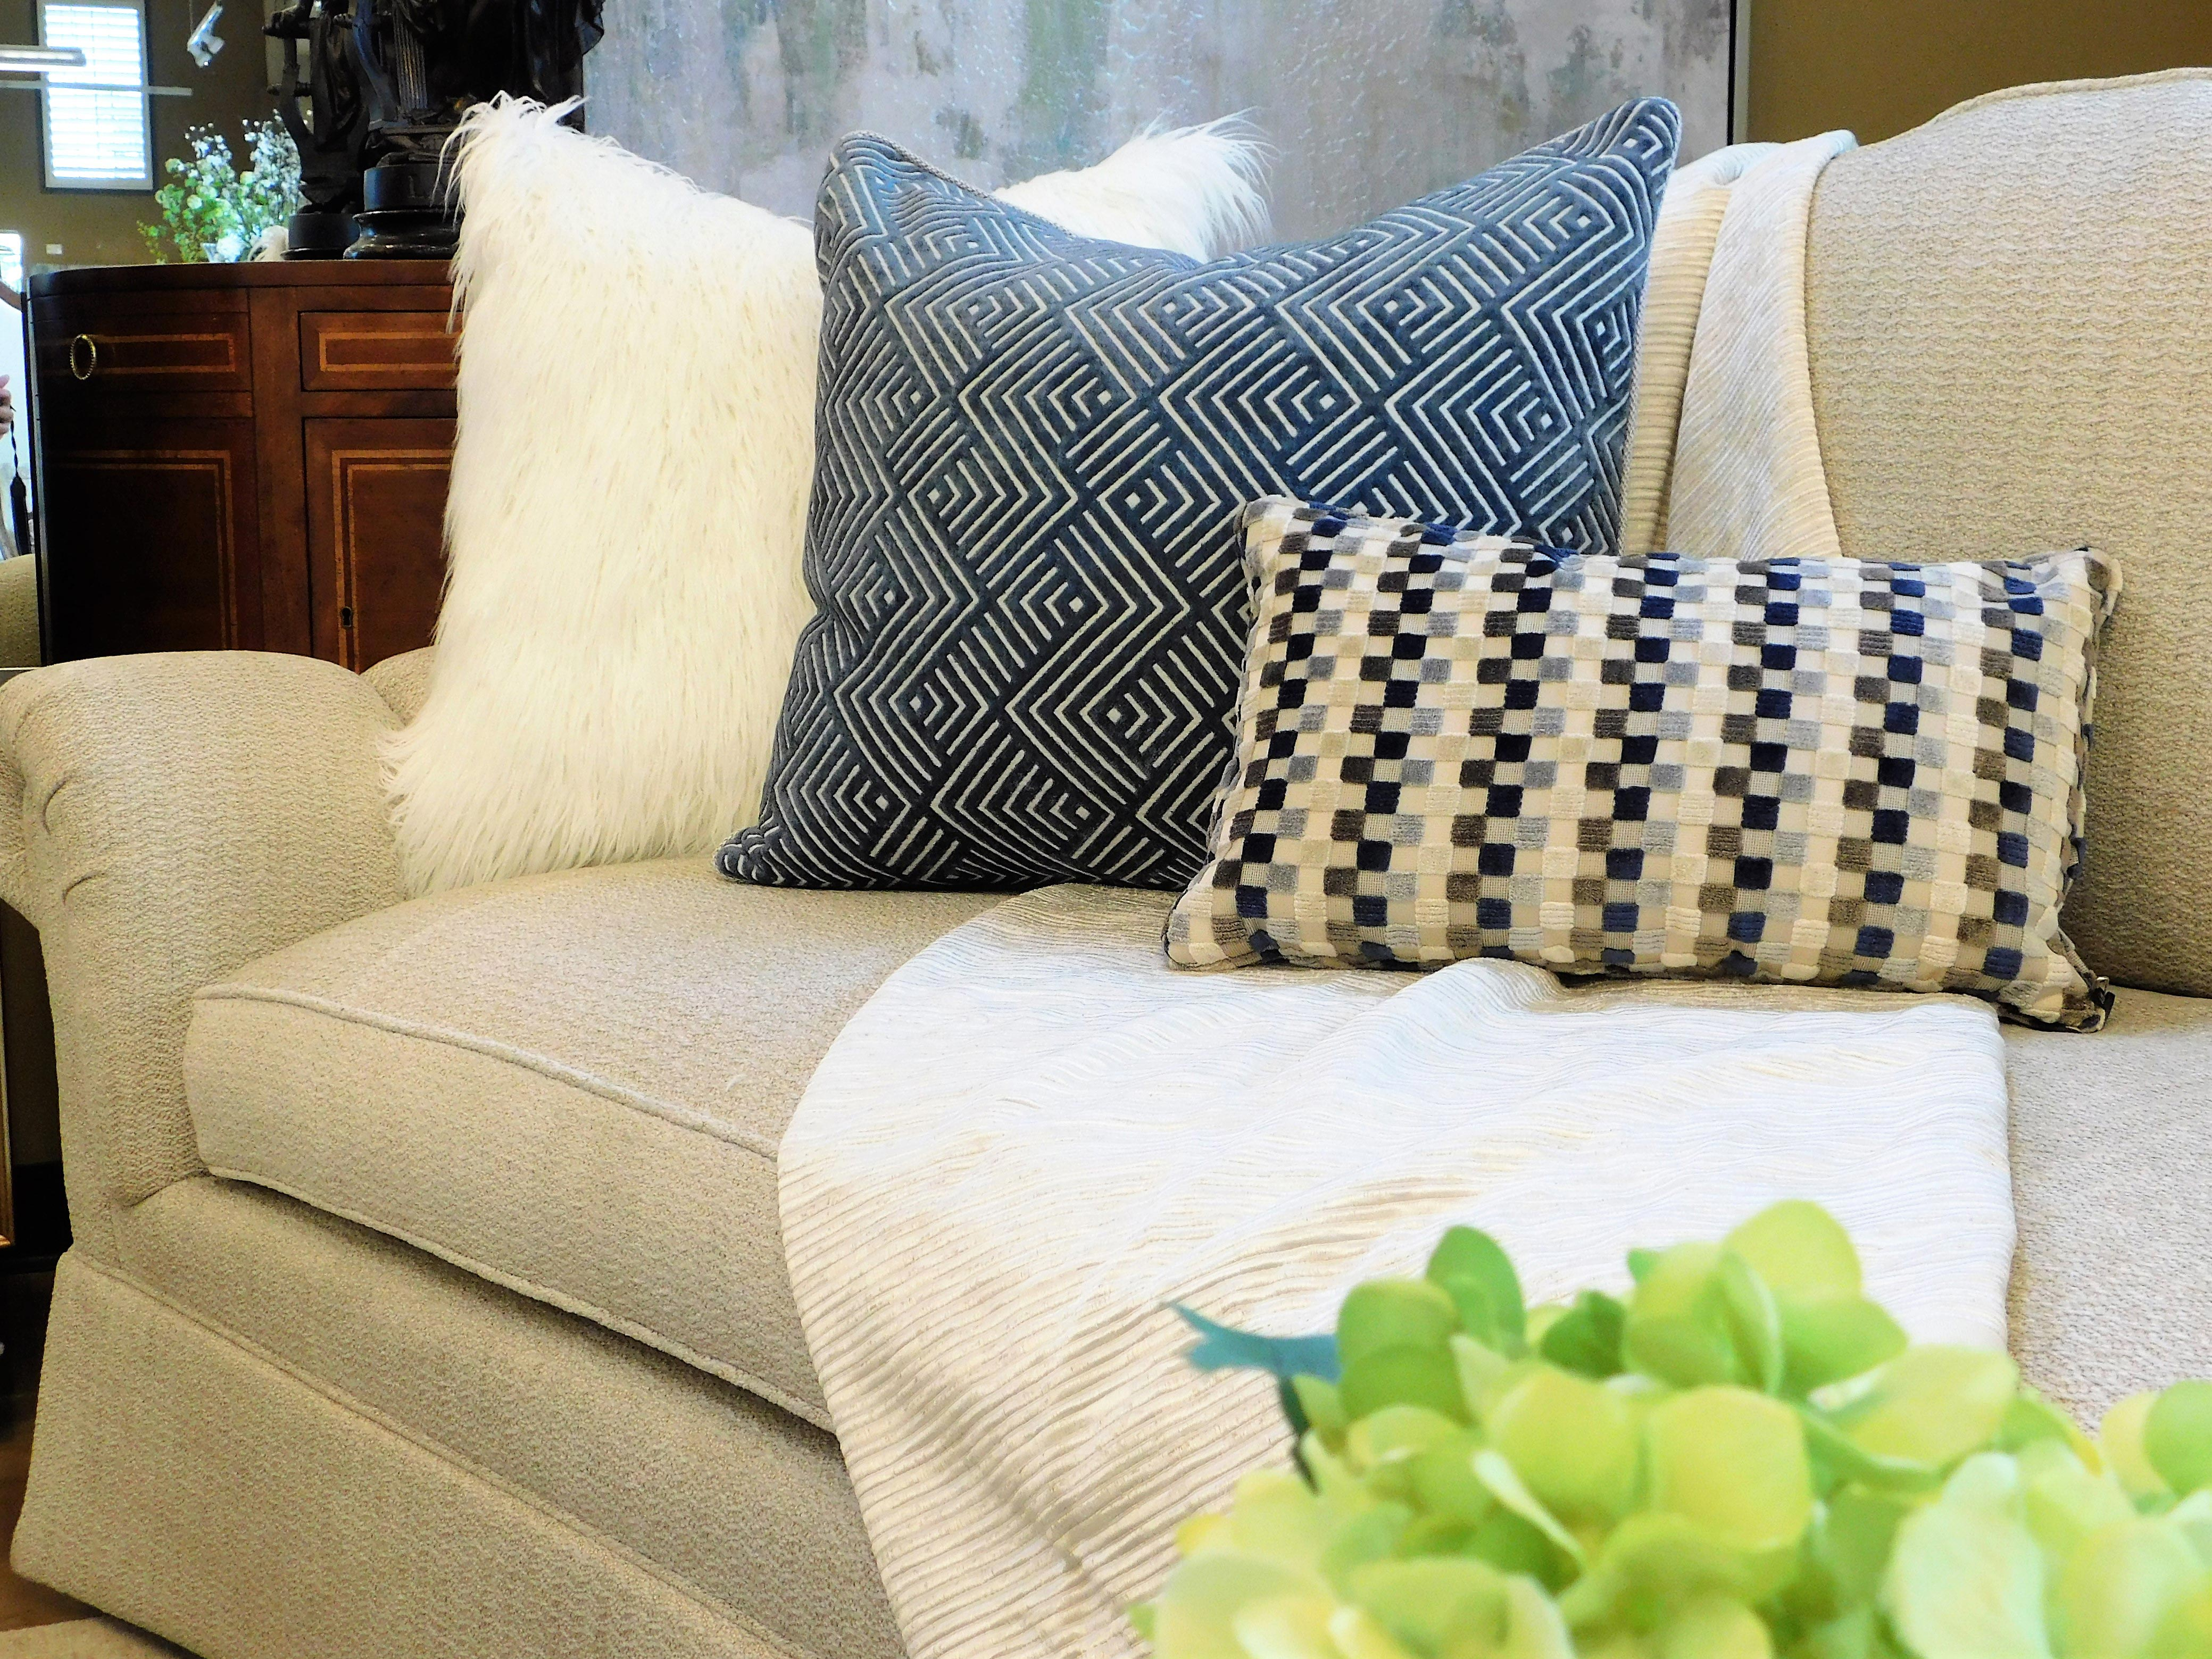 How To Mix And Match Pillows On A Sofa